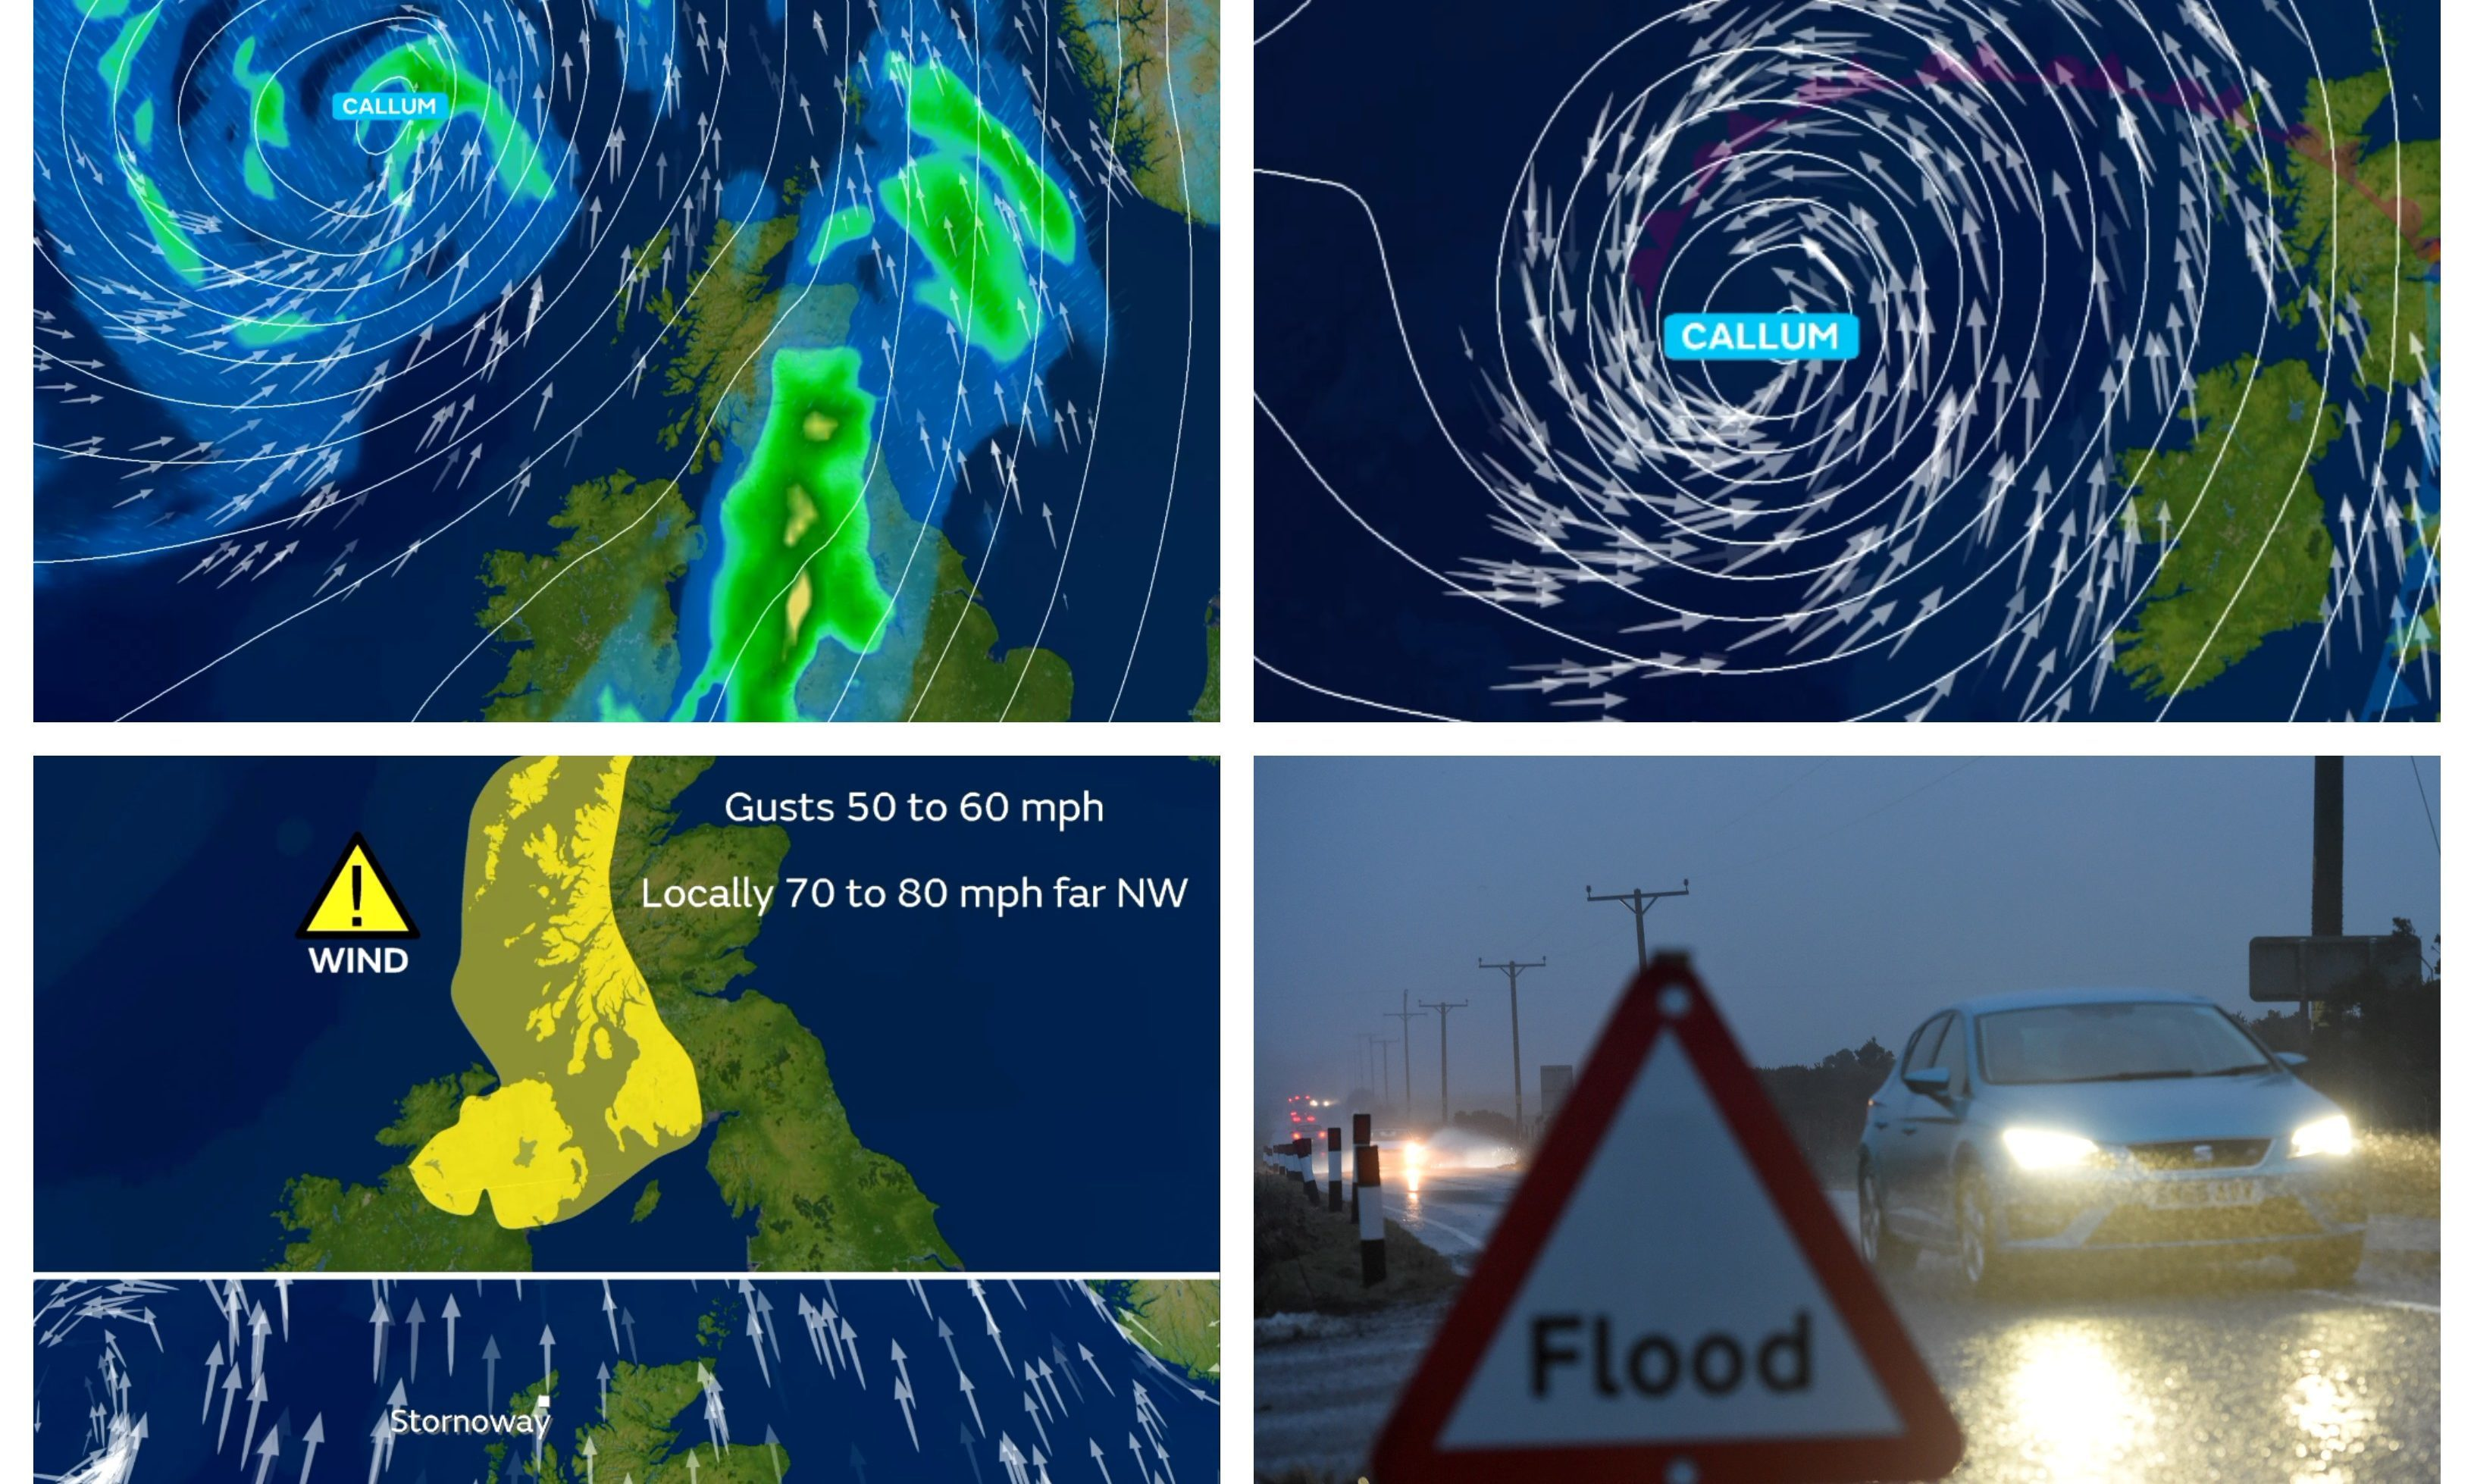 Storm Callum is expected in the coming days.